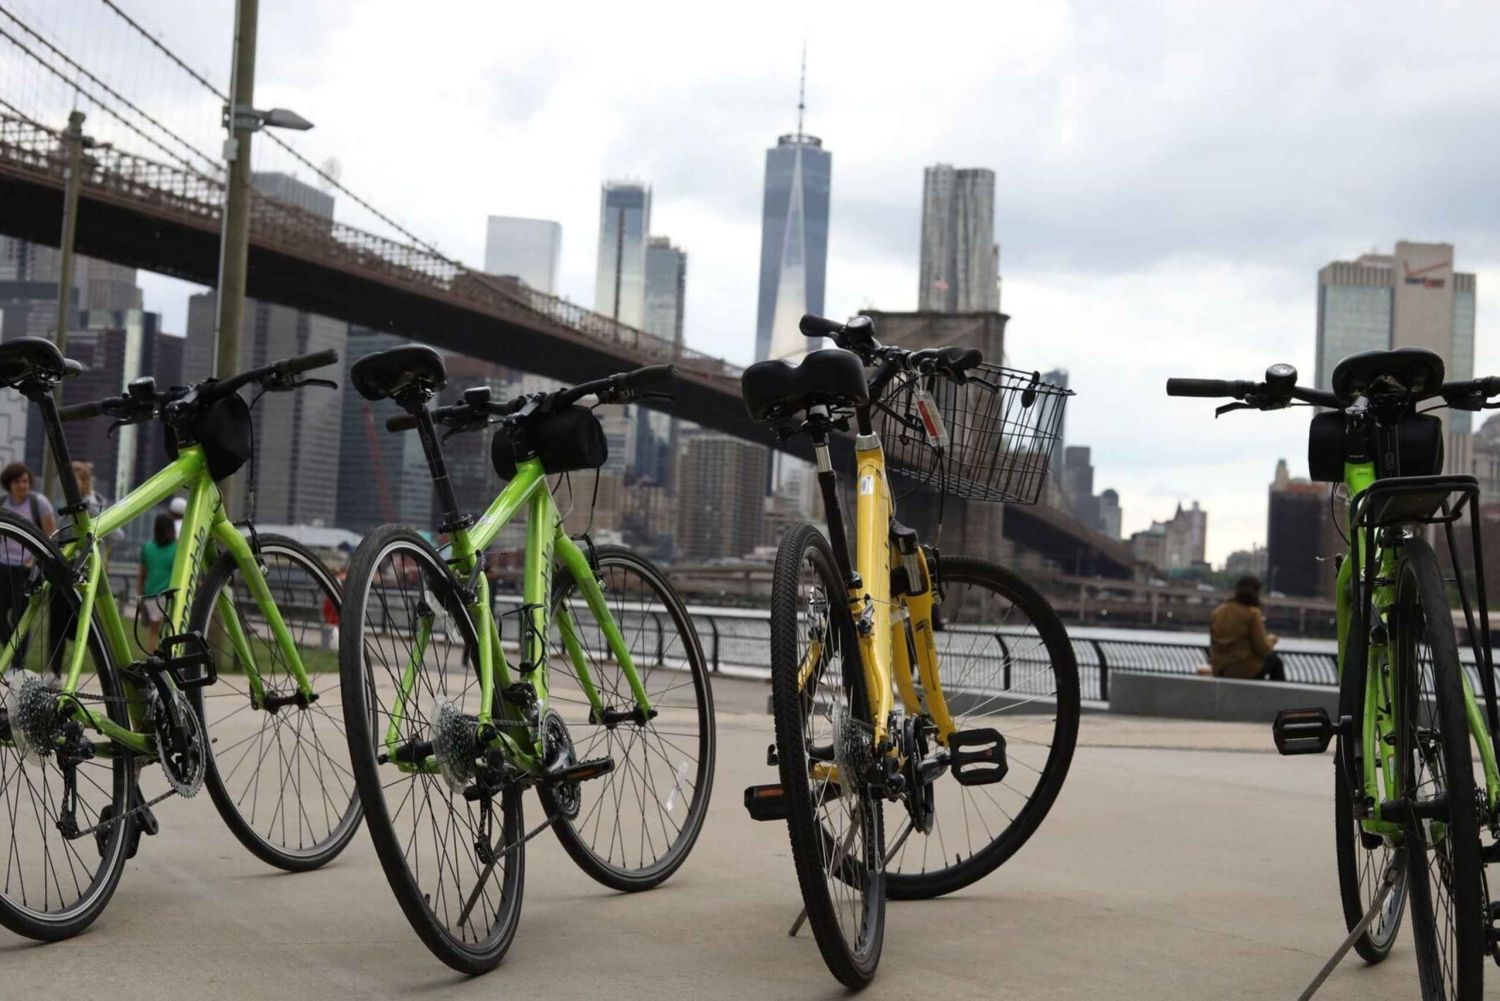 New Brooklyn Bridge Bike Rentals Unlimited Biking